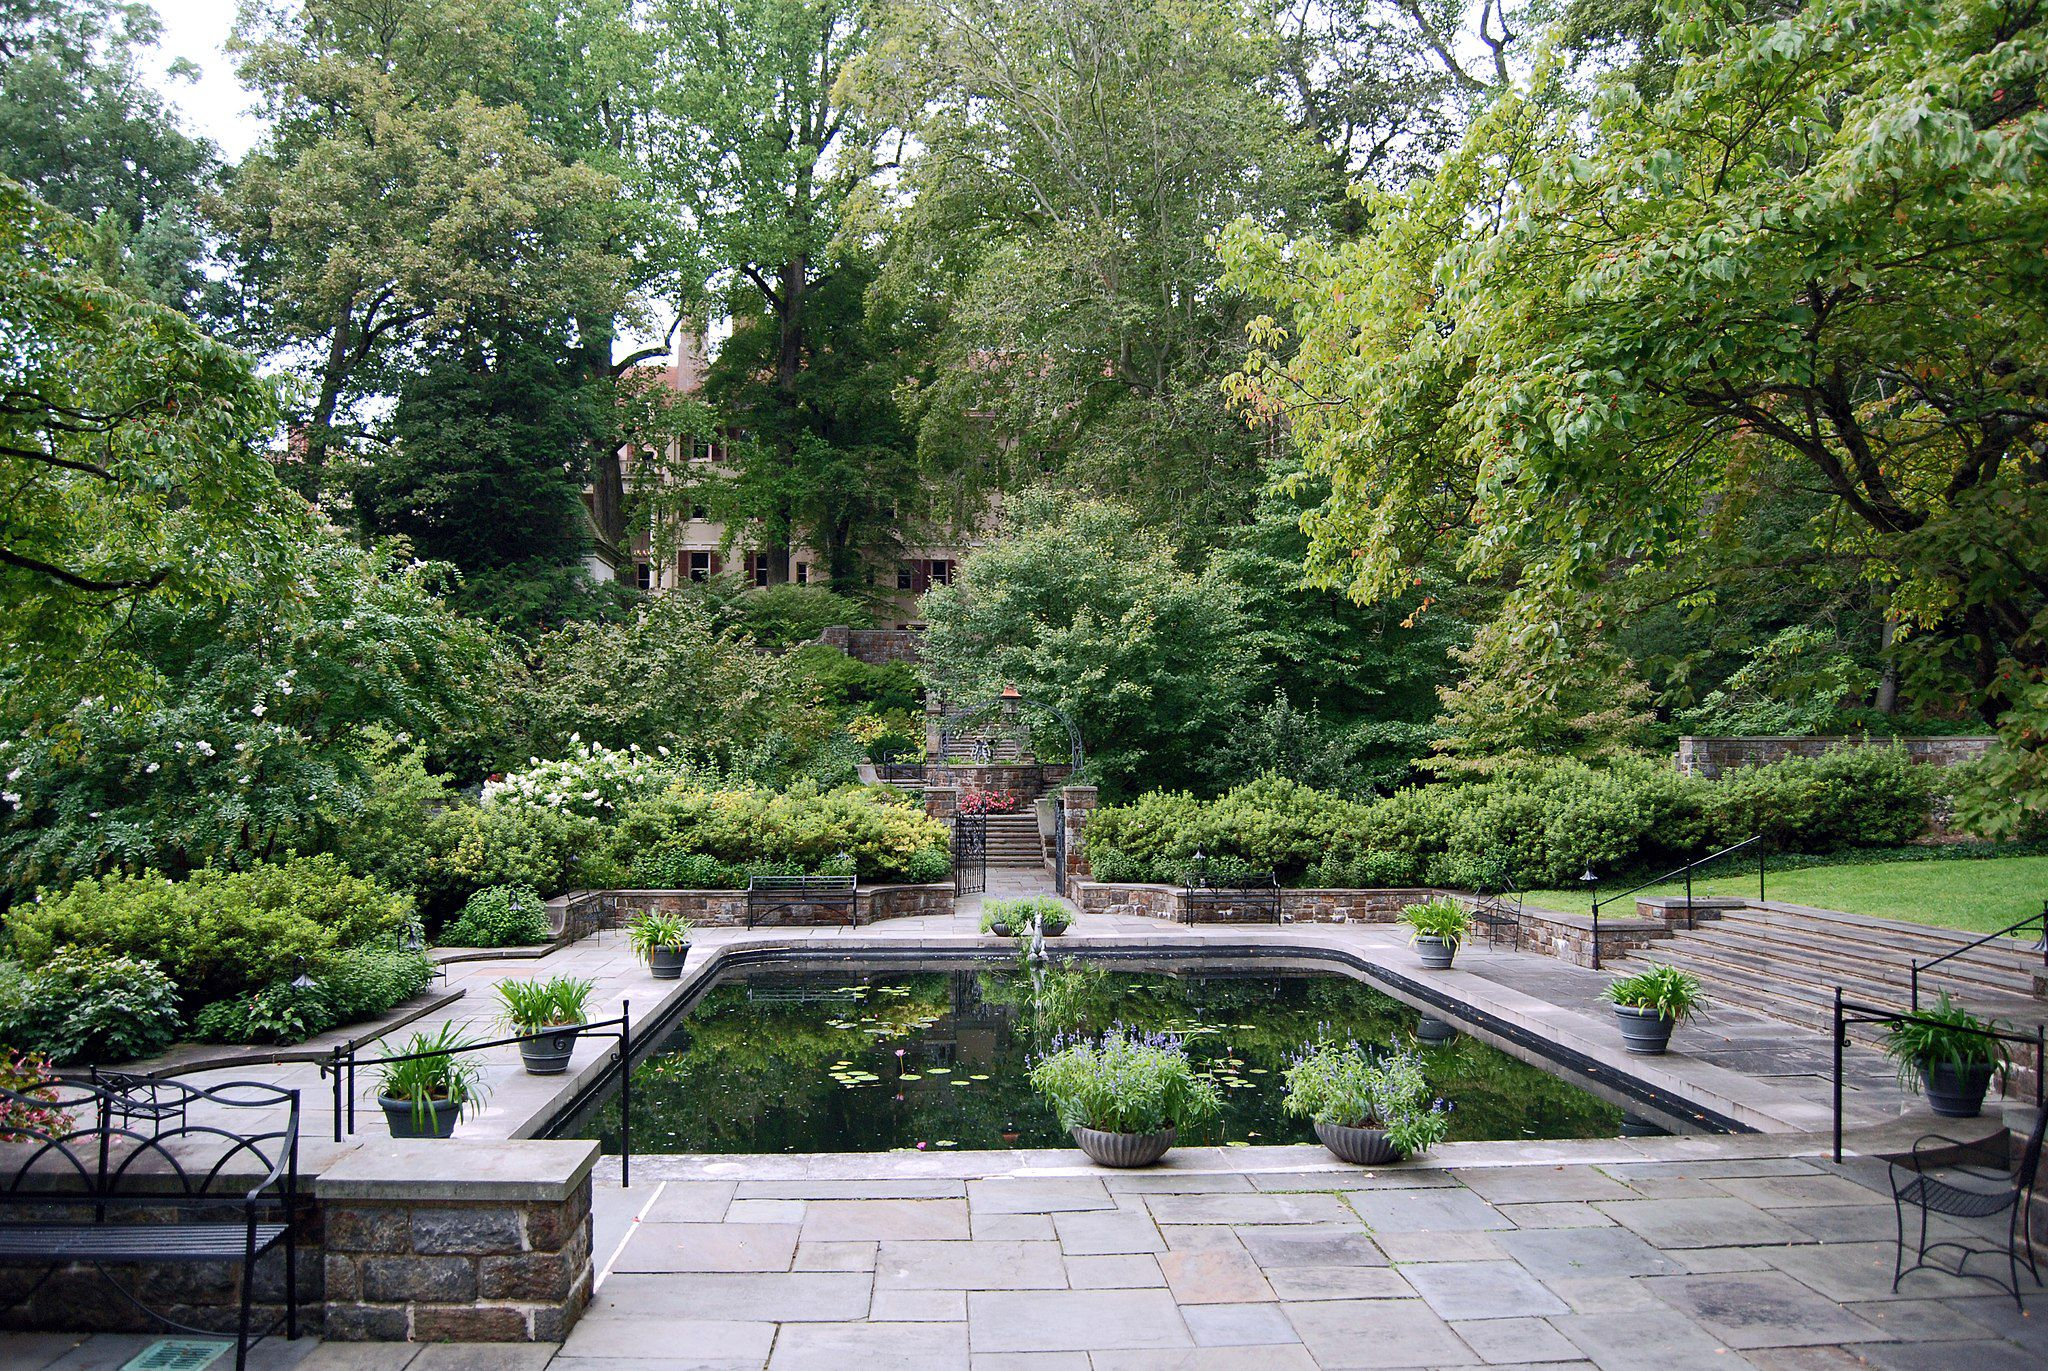 View of the Winterthur House from the Reflecting Pool